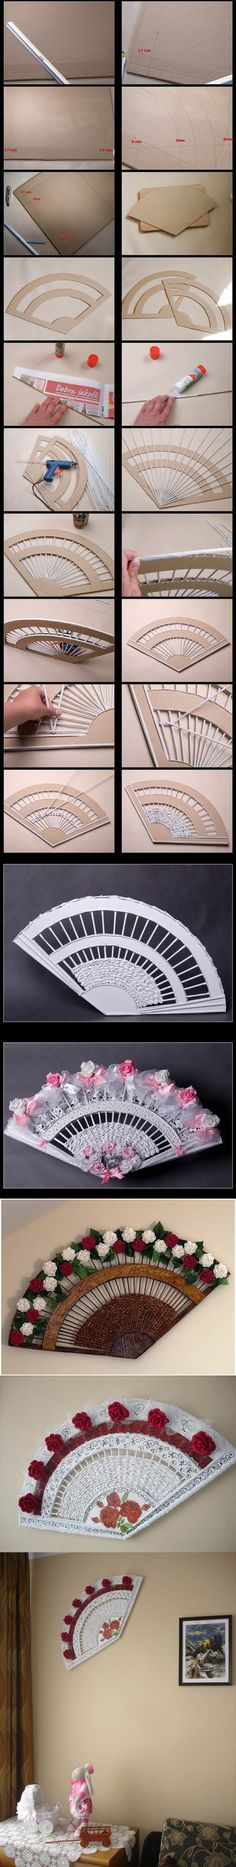 DIY Decorative Fan from Old Newspaper and Cardboard 2 gift packing tray. Diy Projects To Try, Crafts To Do, Craft Projects, Arts And Crafts, Craft Ideas, Decor Ideas, Newspaper Crafts, Old Newspaper, Diy Paper